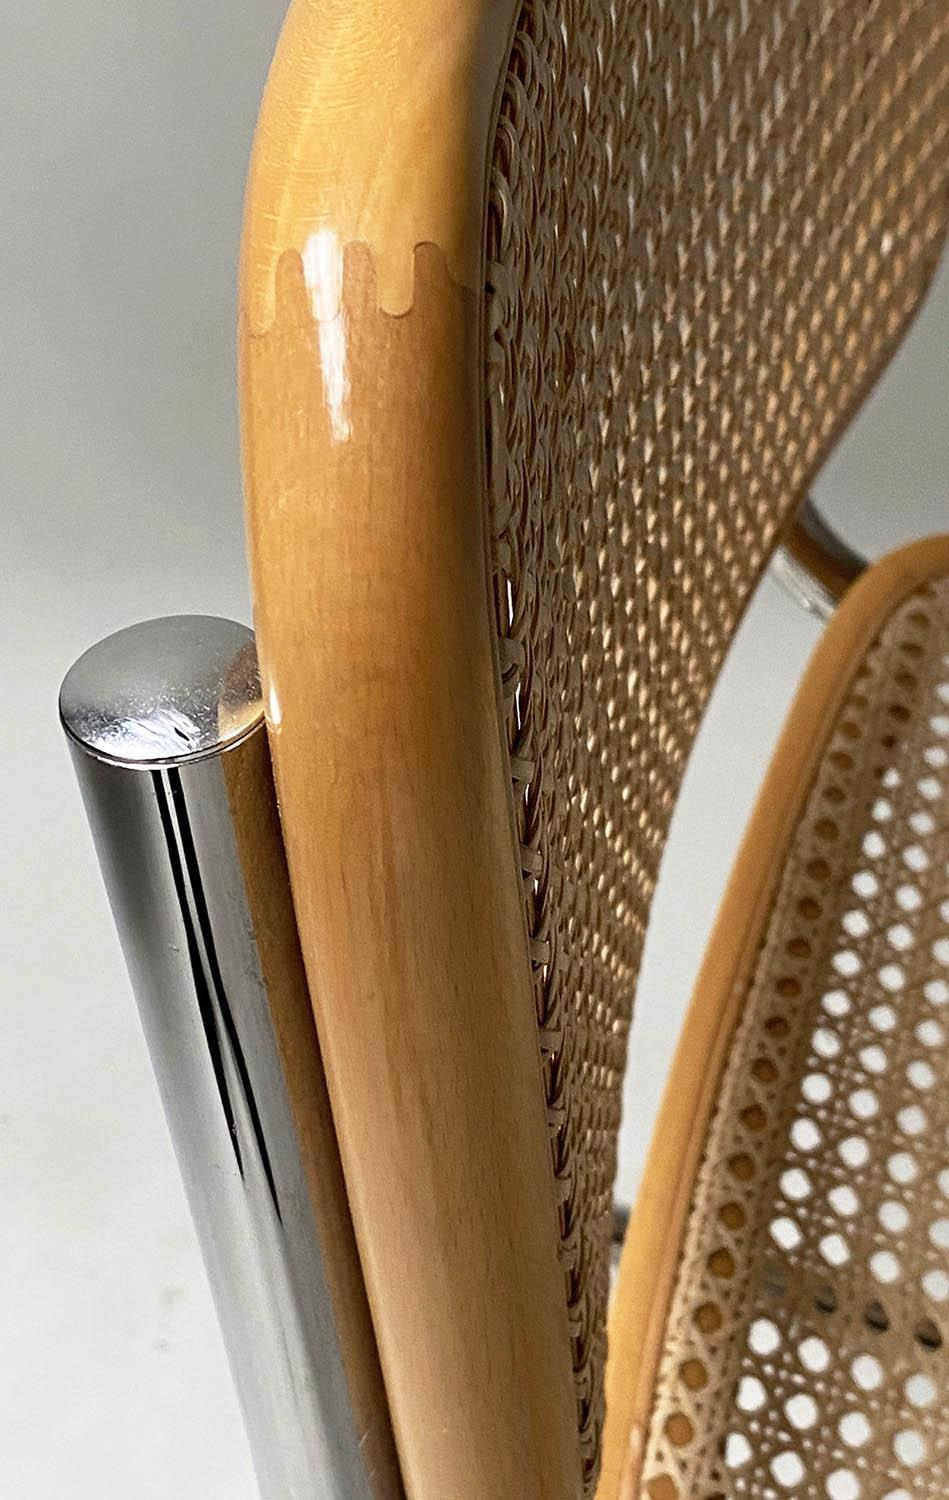 AFTER MARCEL BREUER DINING CHAIRS, Cesca style chairs, a set of six beech wood cane paneled and - Image 4 of 11